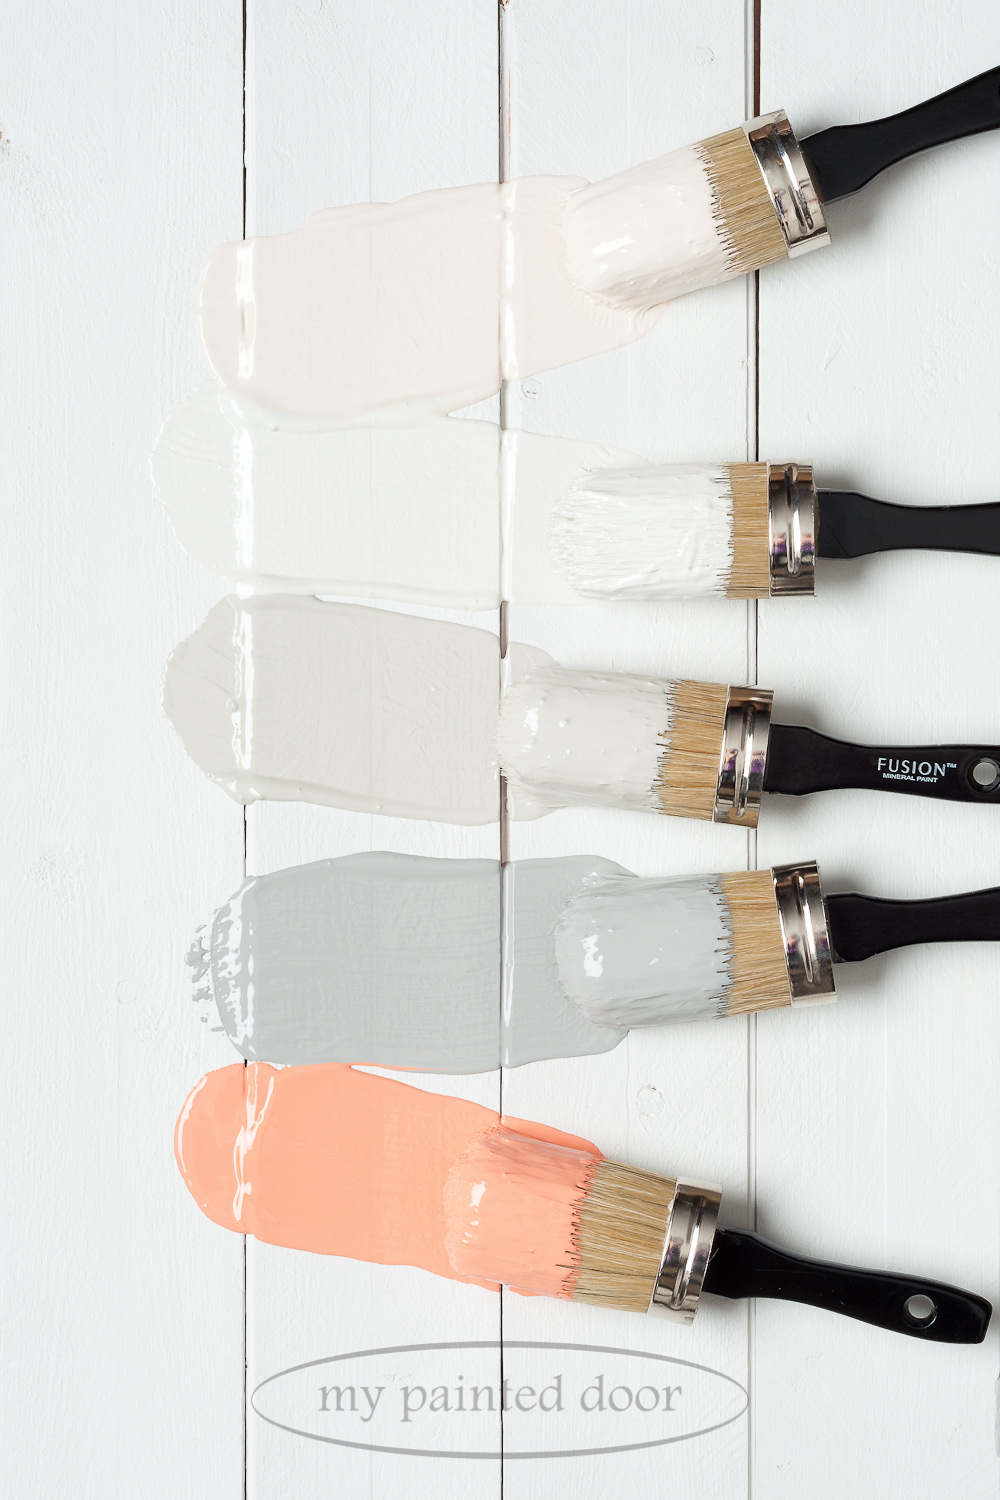 Fusion Mineral Paint Little Piggy,Raw Silk,Putty,Little Lamb and Coral.